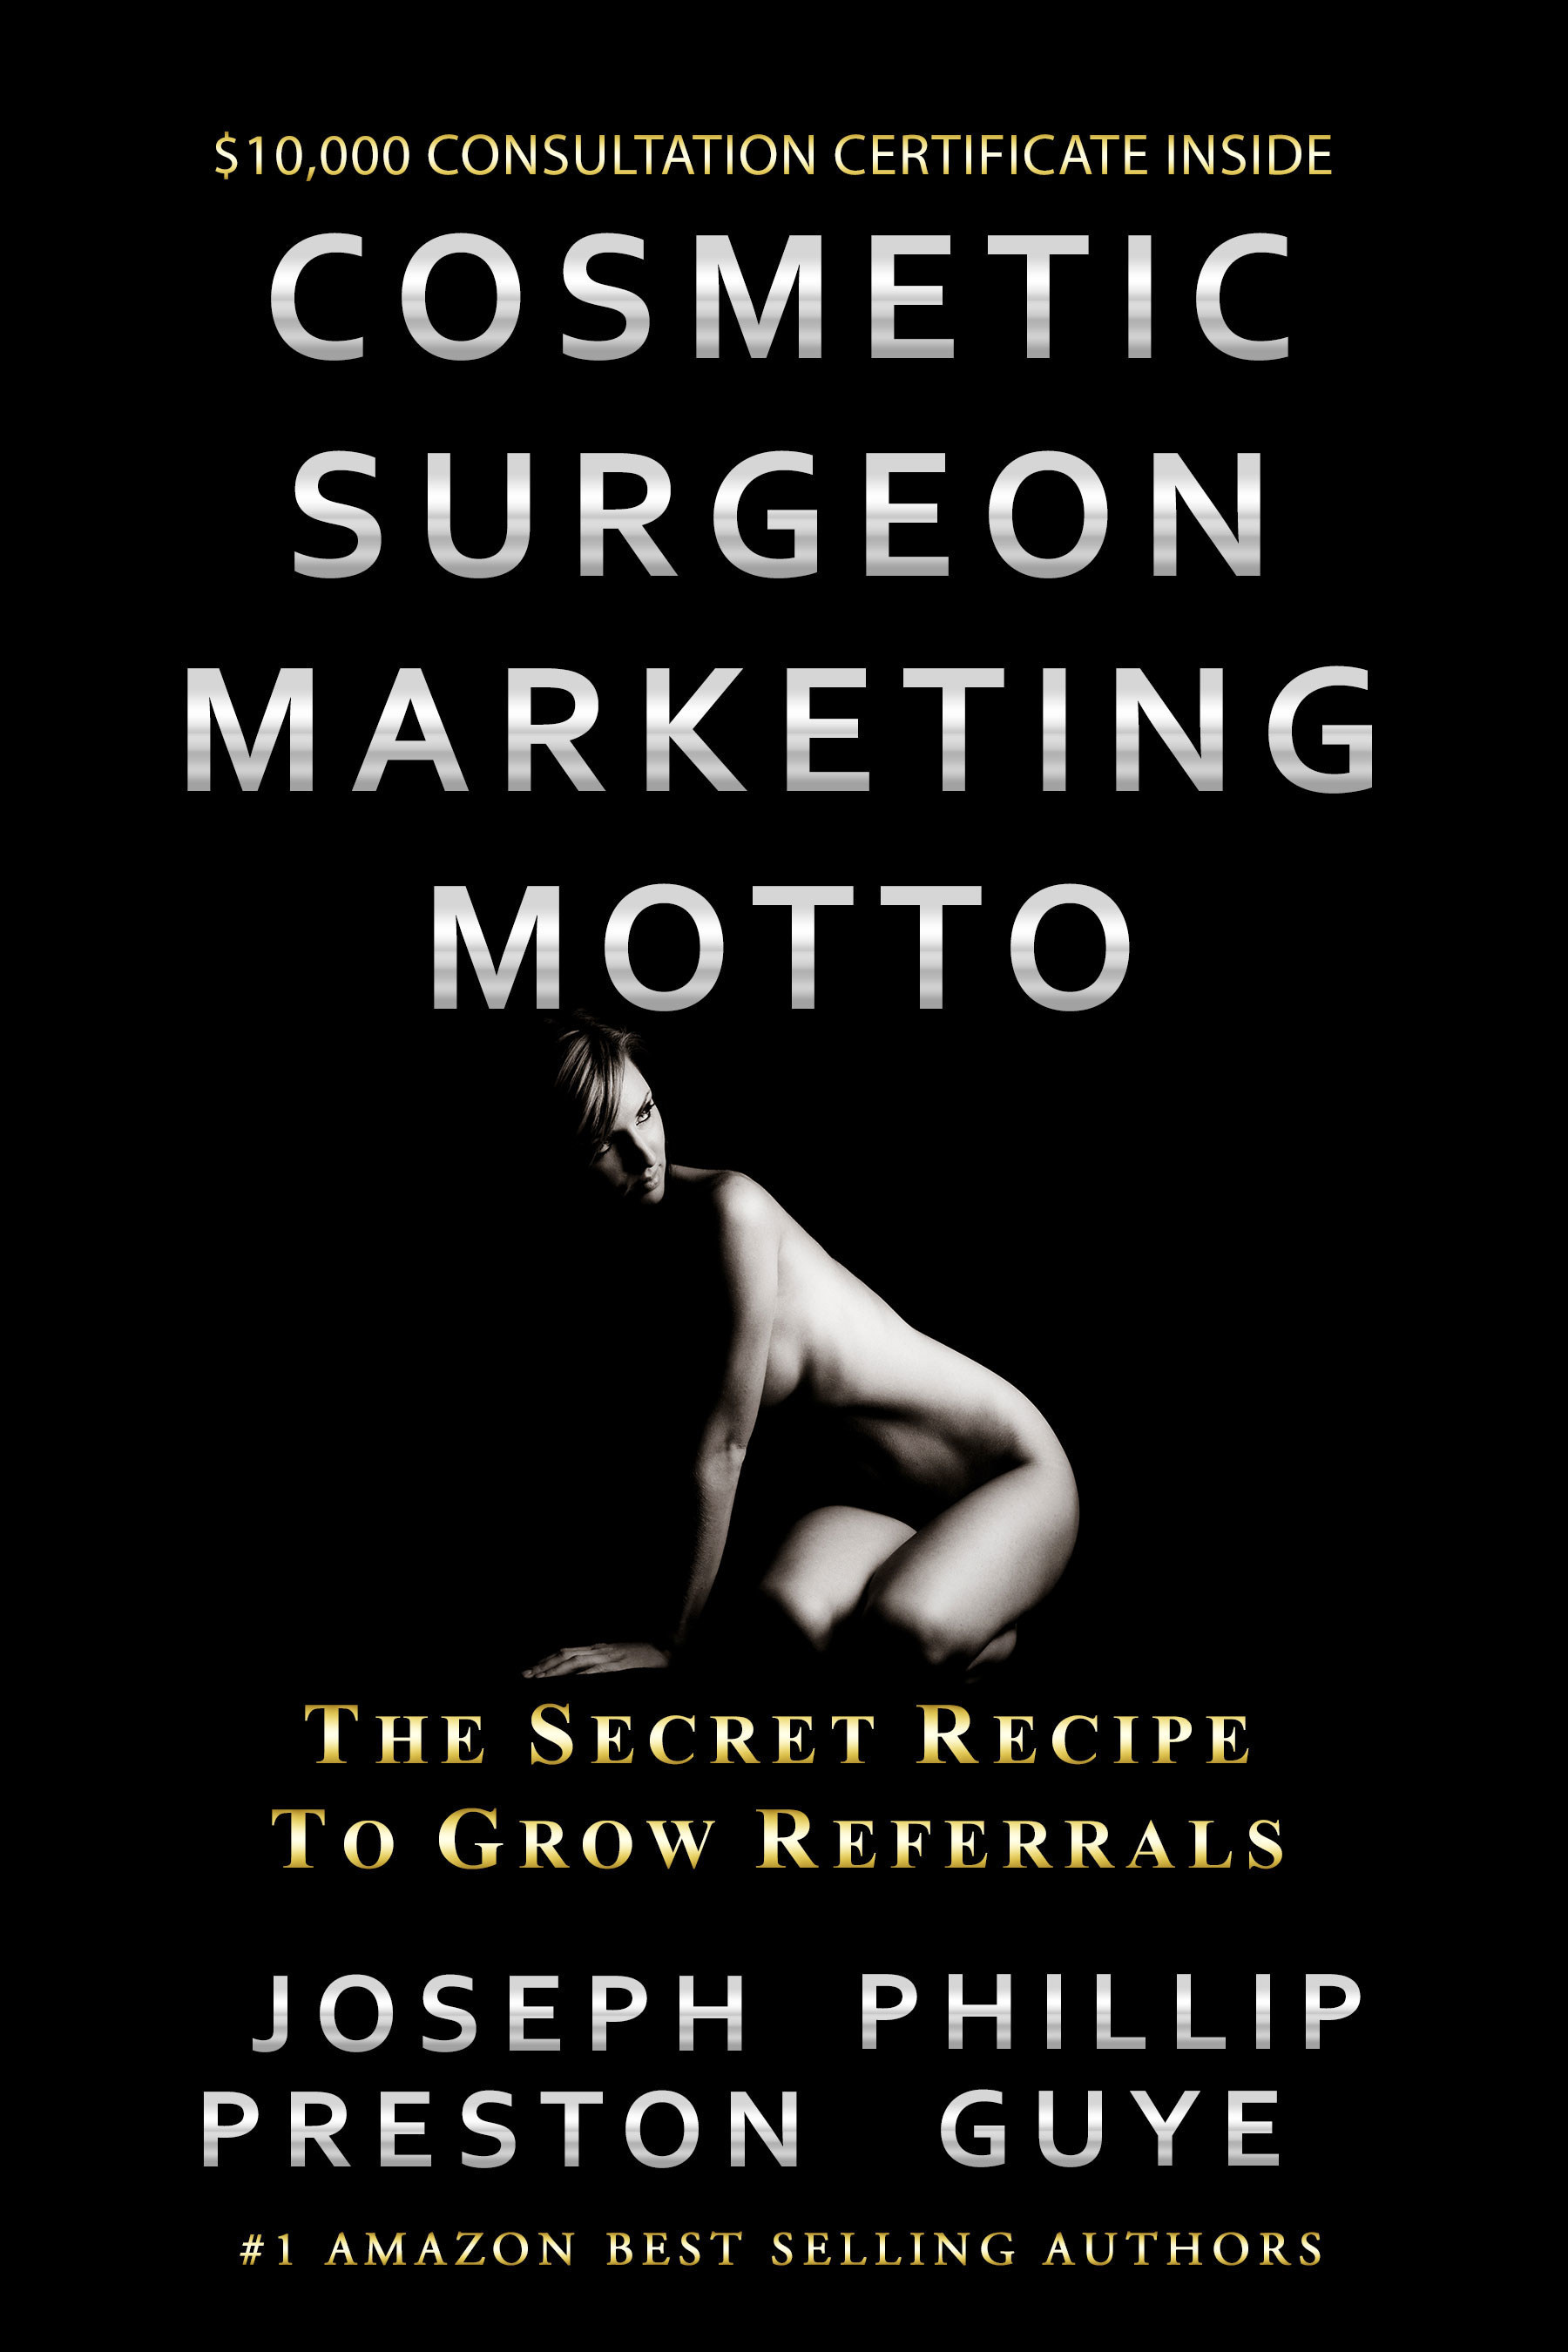 World's Most Expensive New Book, COSMETIC SURGEON MARKETING MOTTO, Unveiled at Amazon, Barnes & Noble, and Books A Million